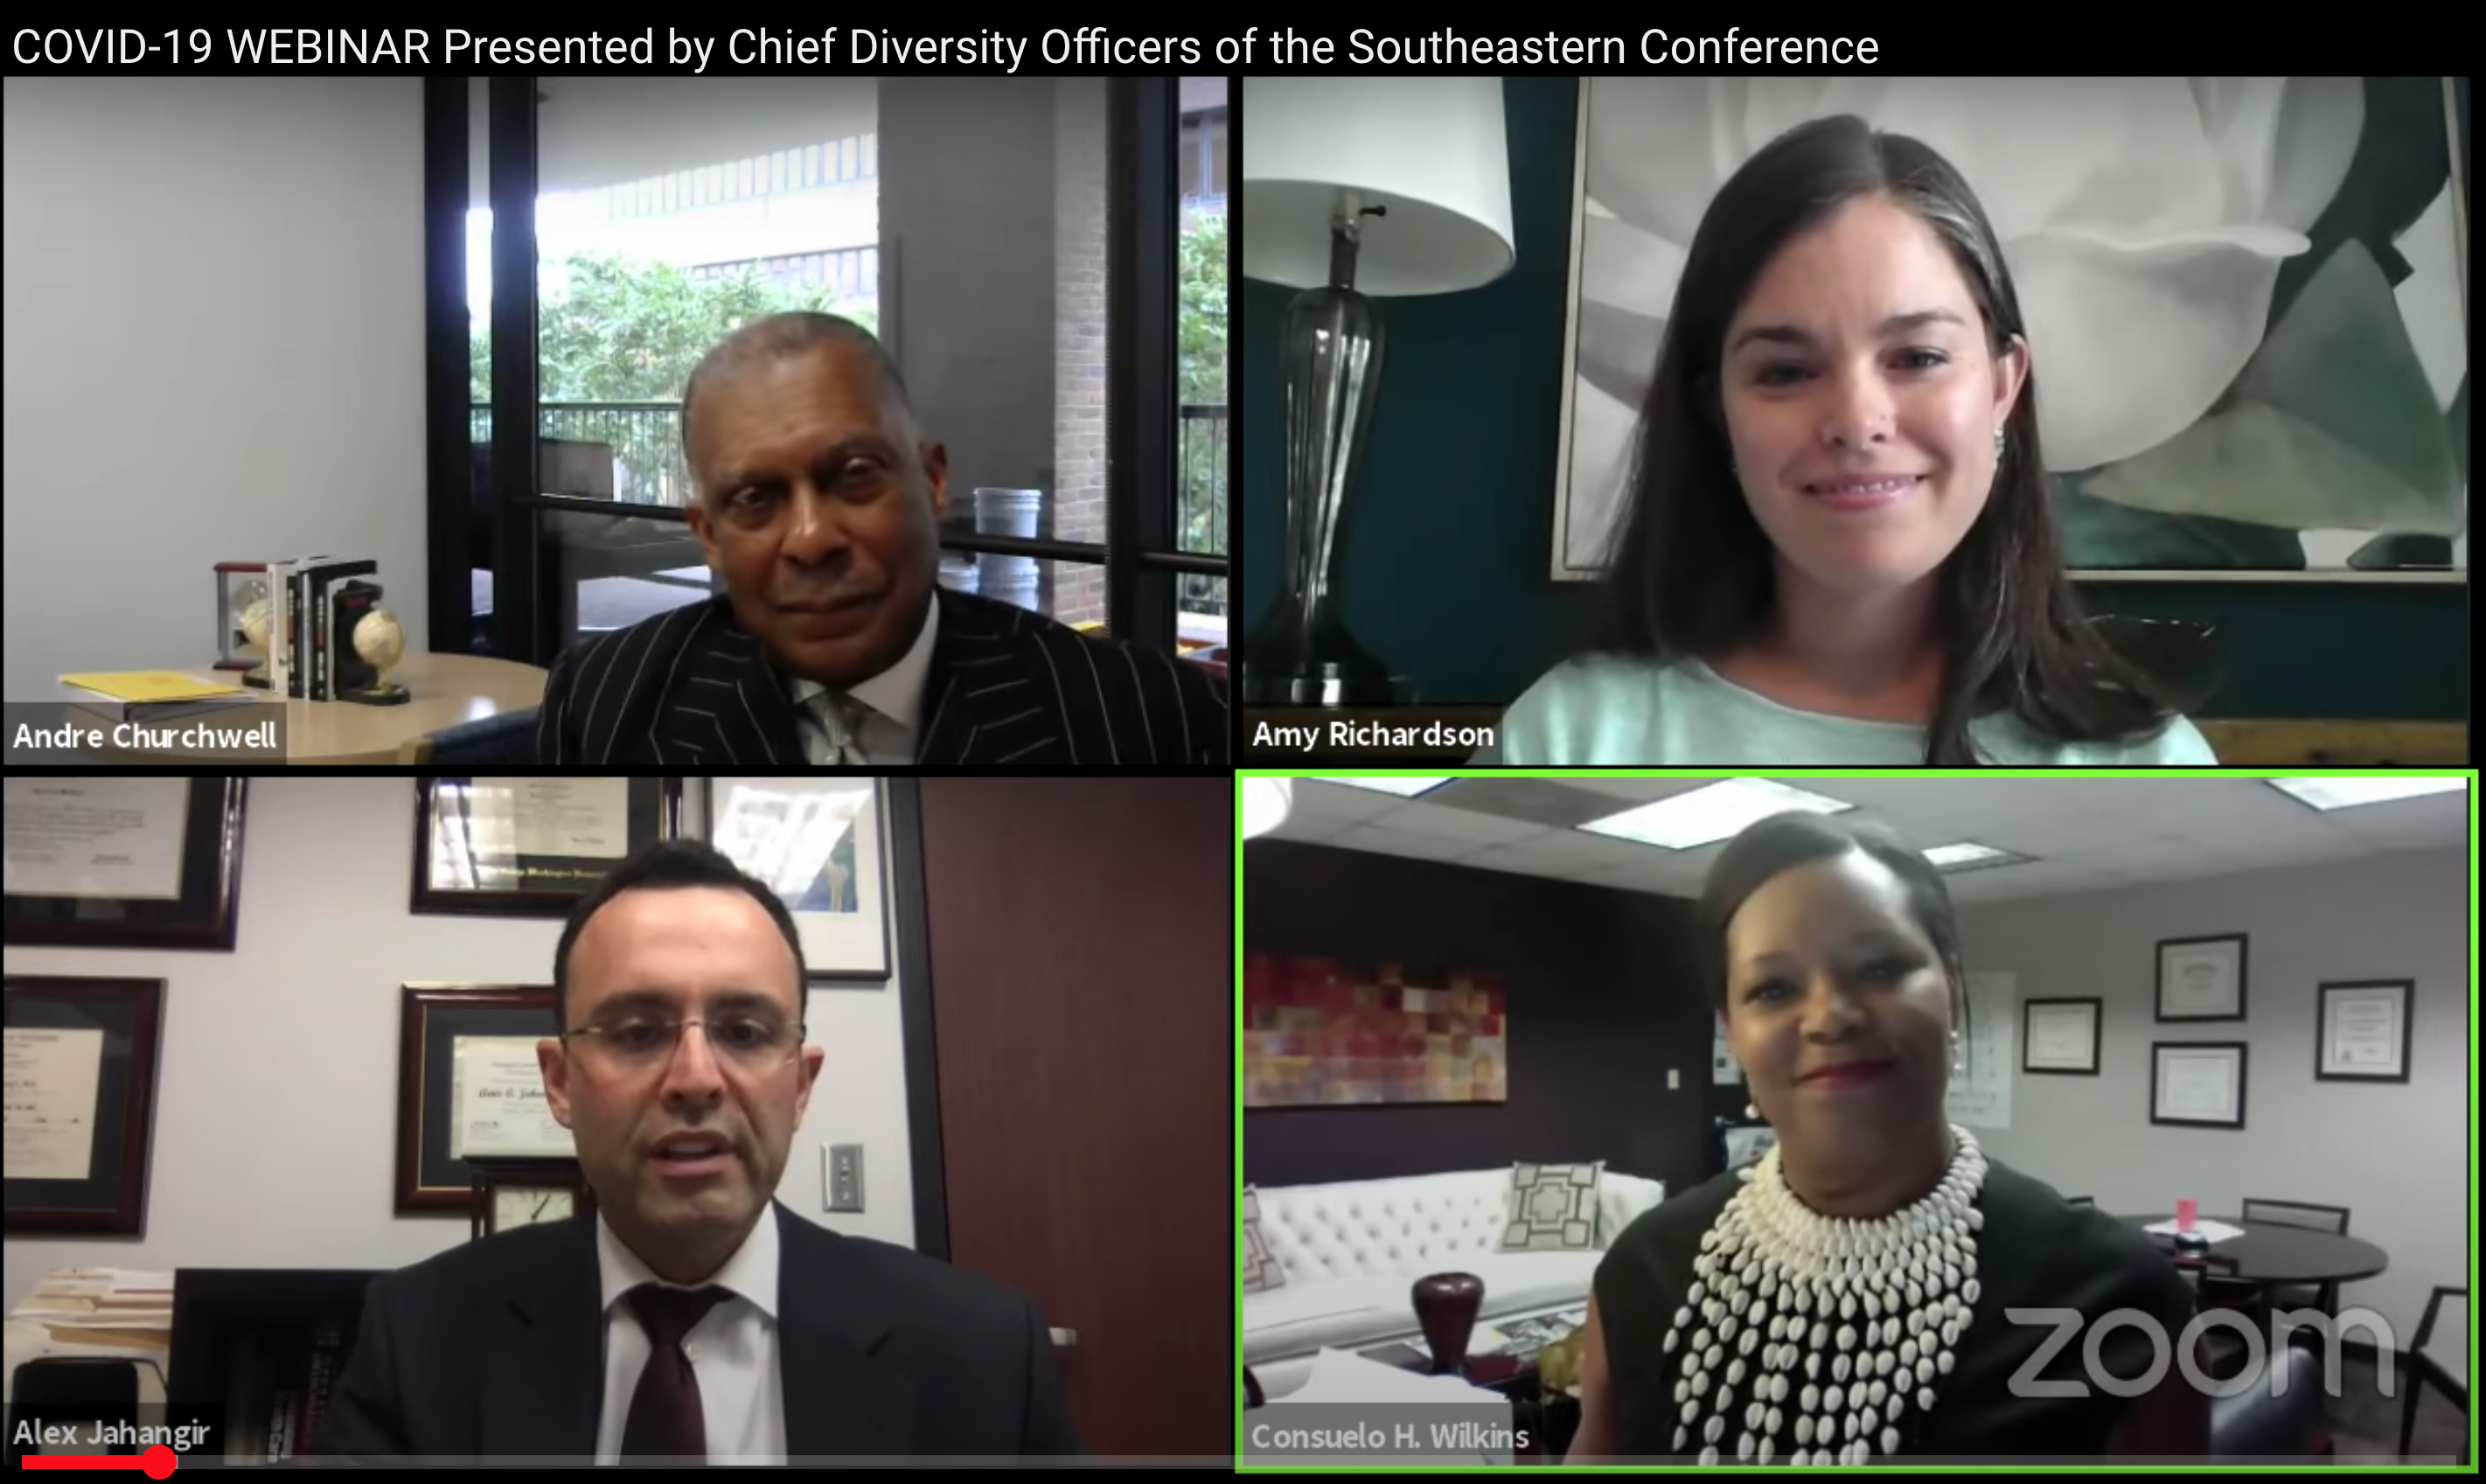 A screenshot of four speakers (Andre Churchwell, Amy Richardson, Alex Jahangir and Conseulo Wilkins)